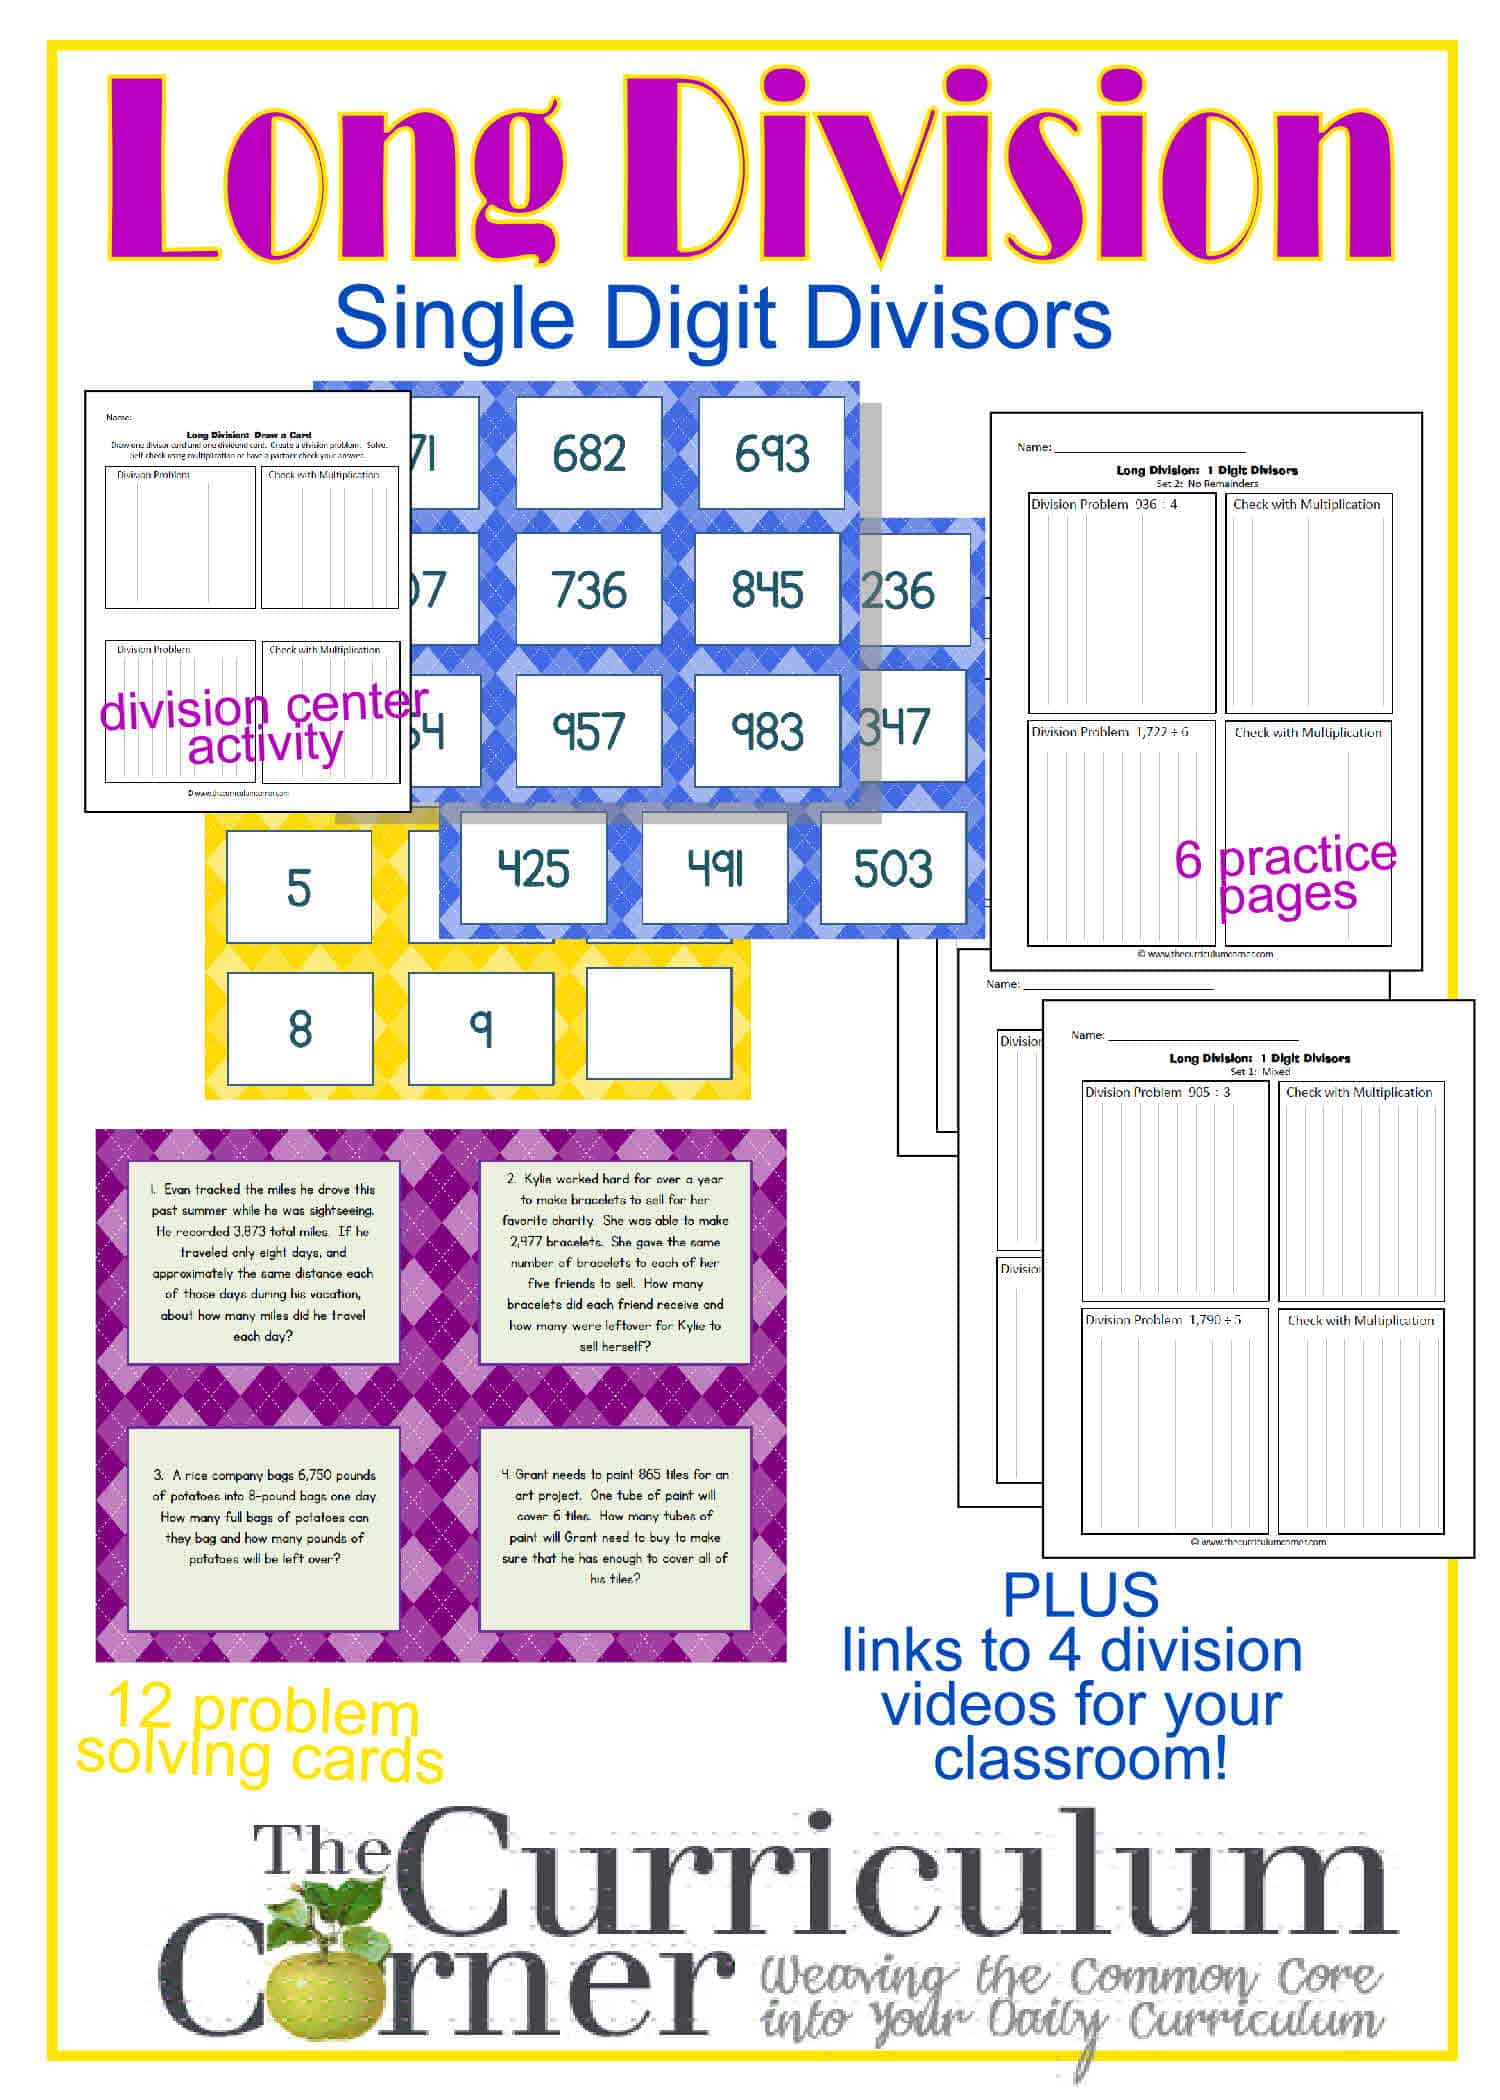 Long Division Resources 1 Digit Divisor